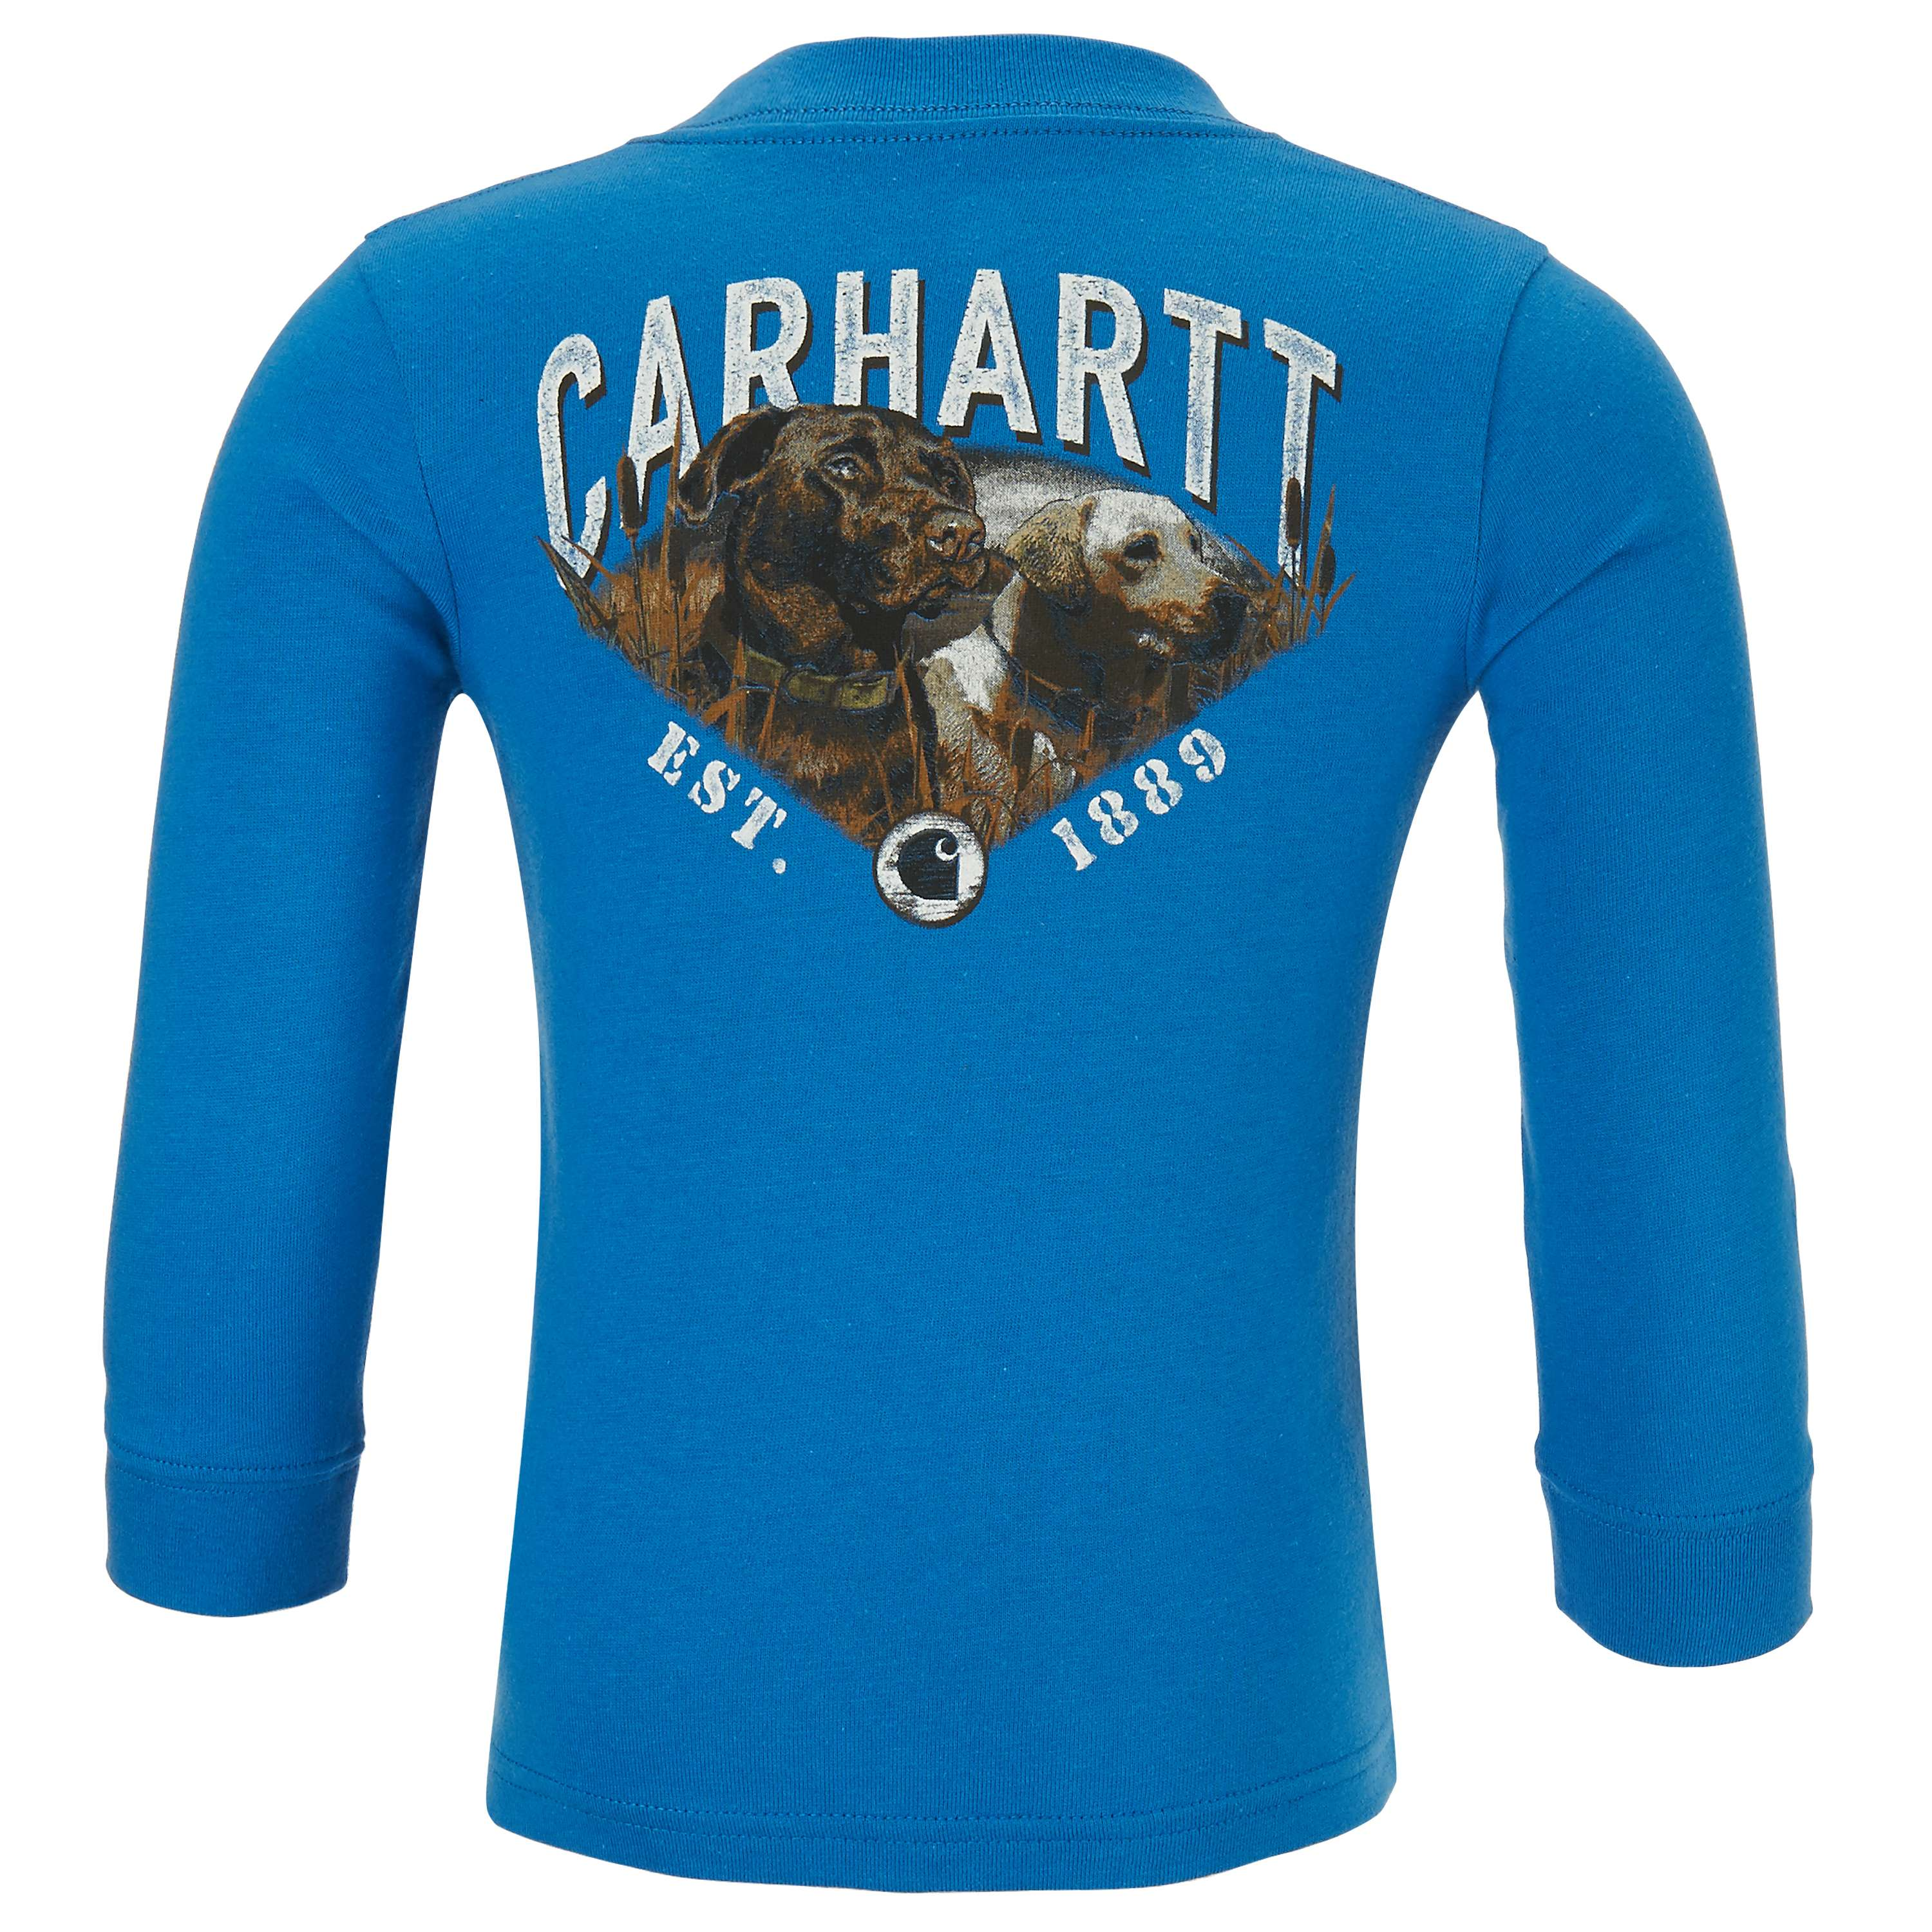 Carhartt Photoreal Labs Pocket T-shirt